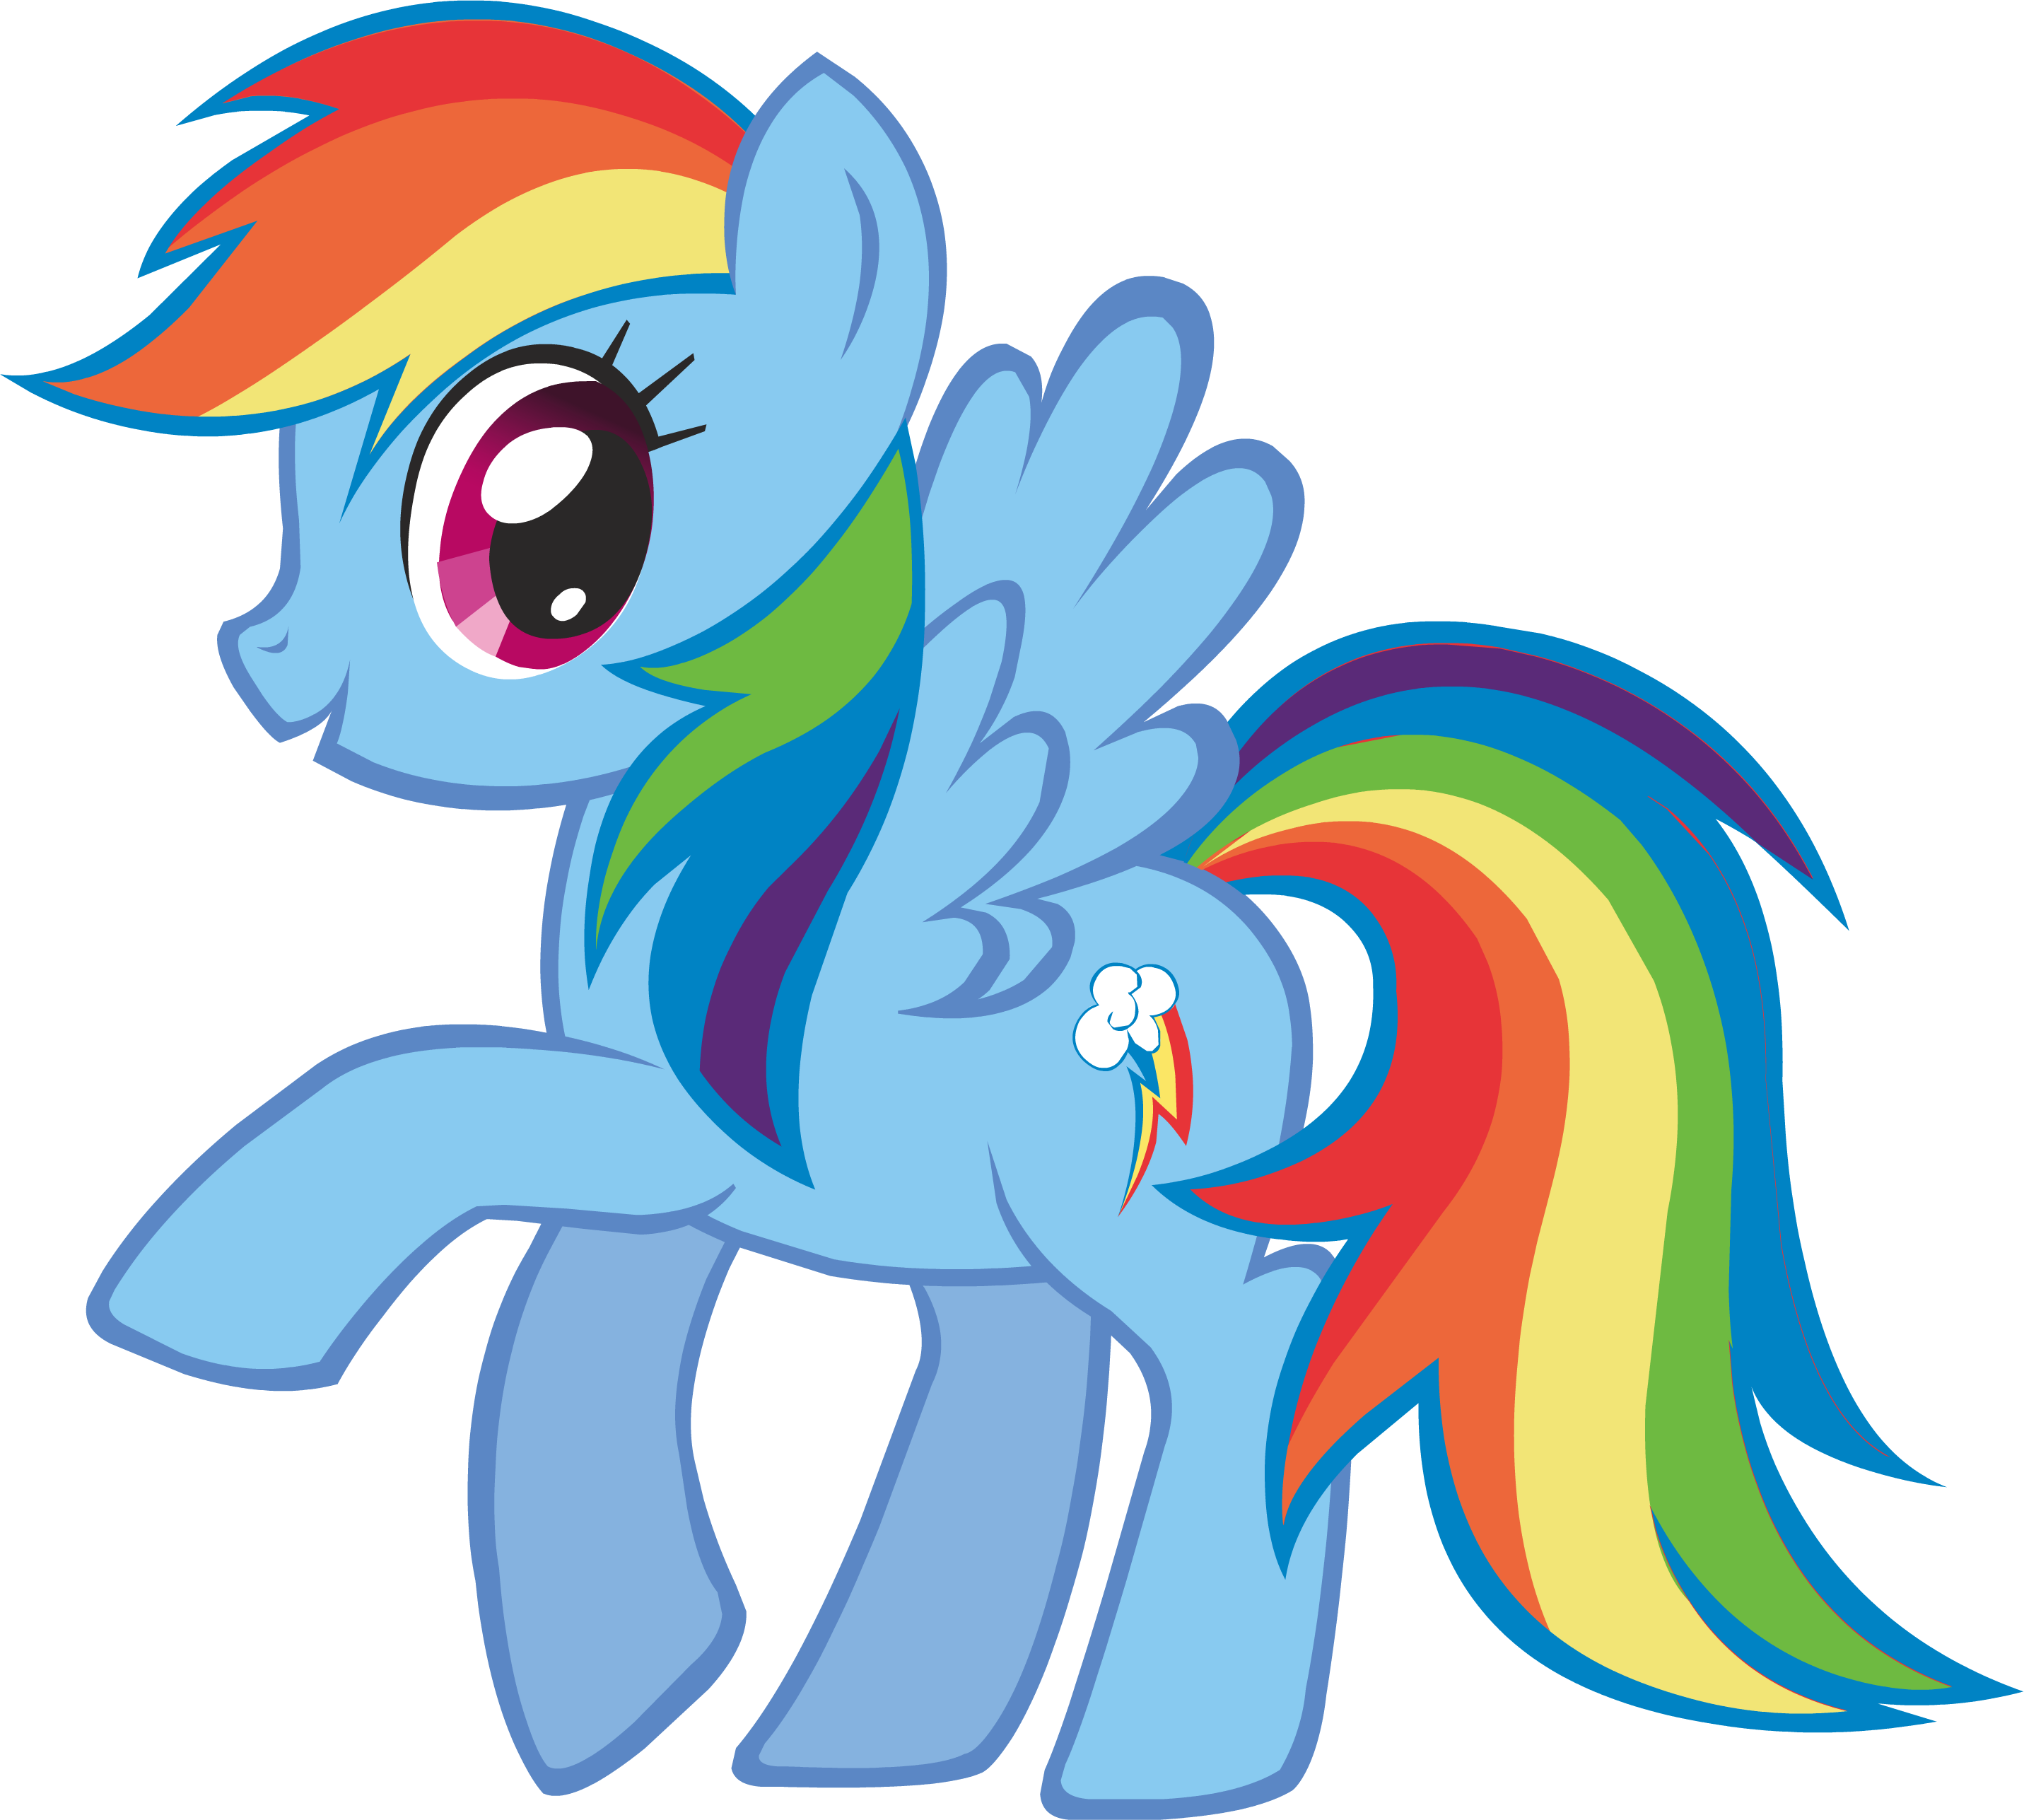 Rainbow Dash Png Image - Canterl...